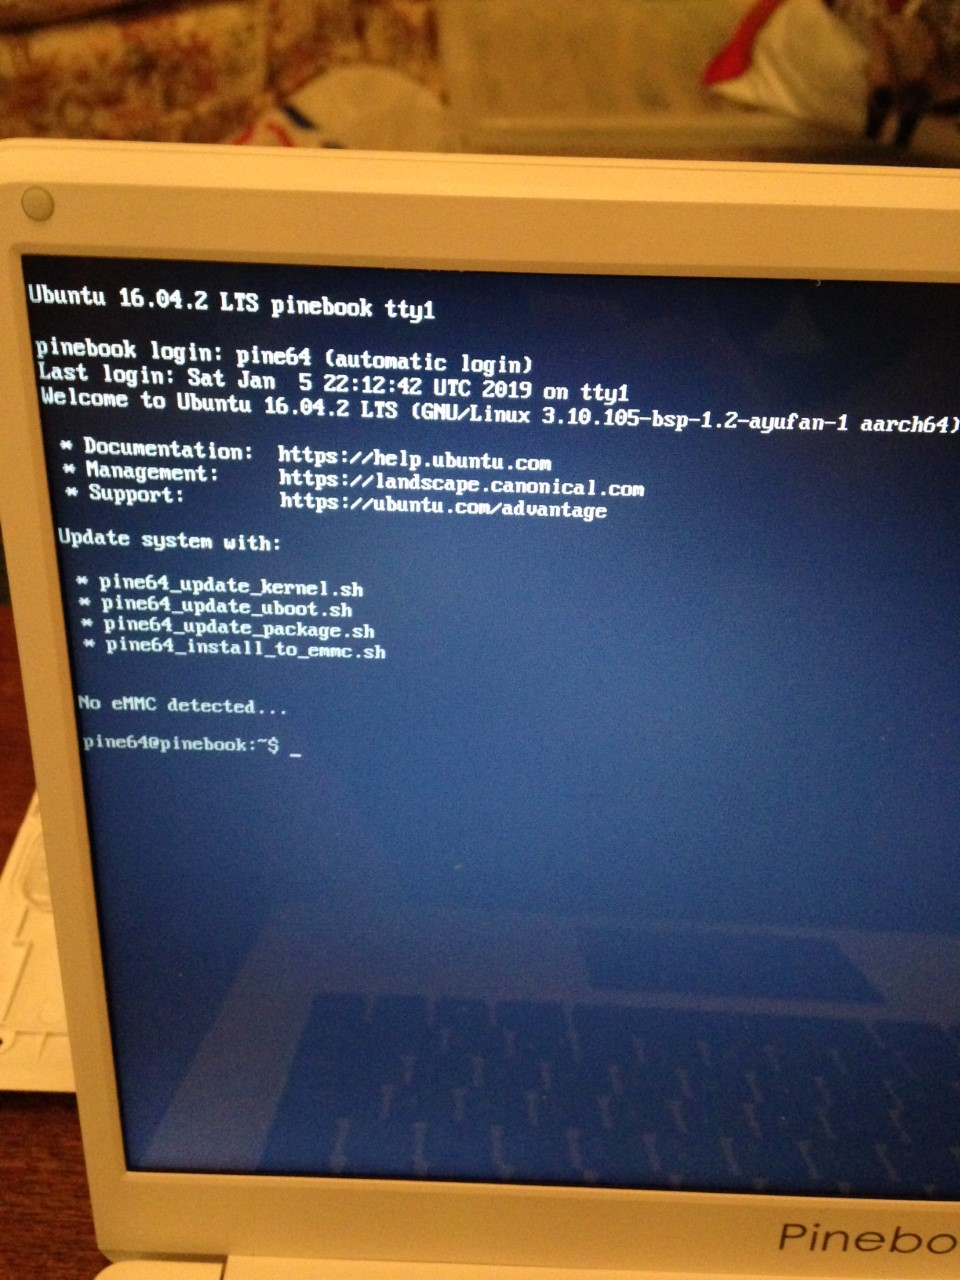 Problems putting Ubuntu (Xenial Mate) on my replacement eMMC